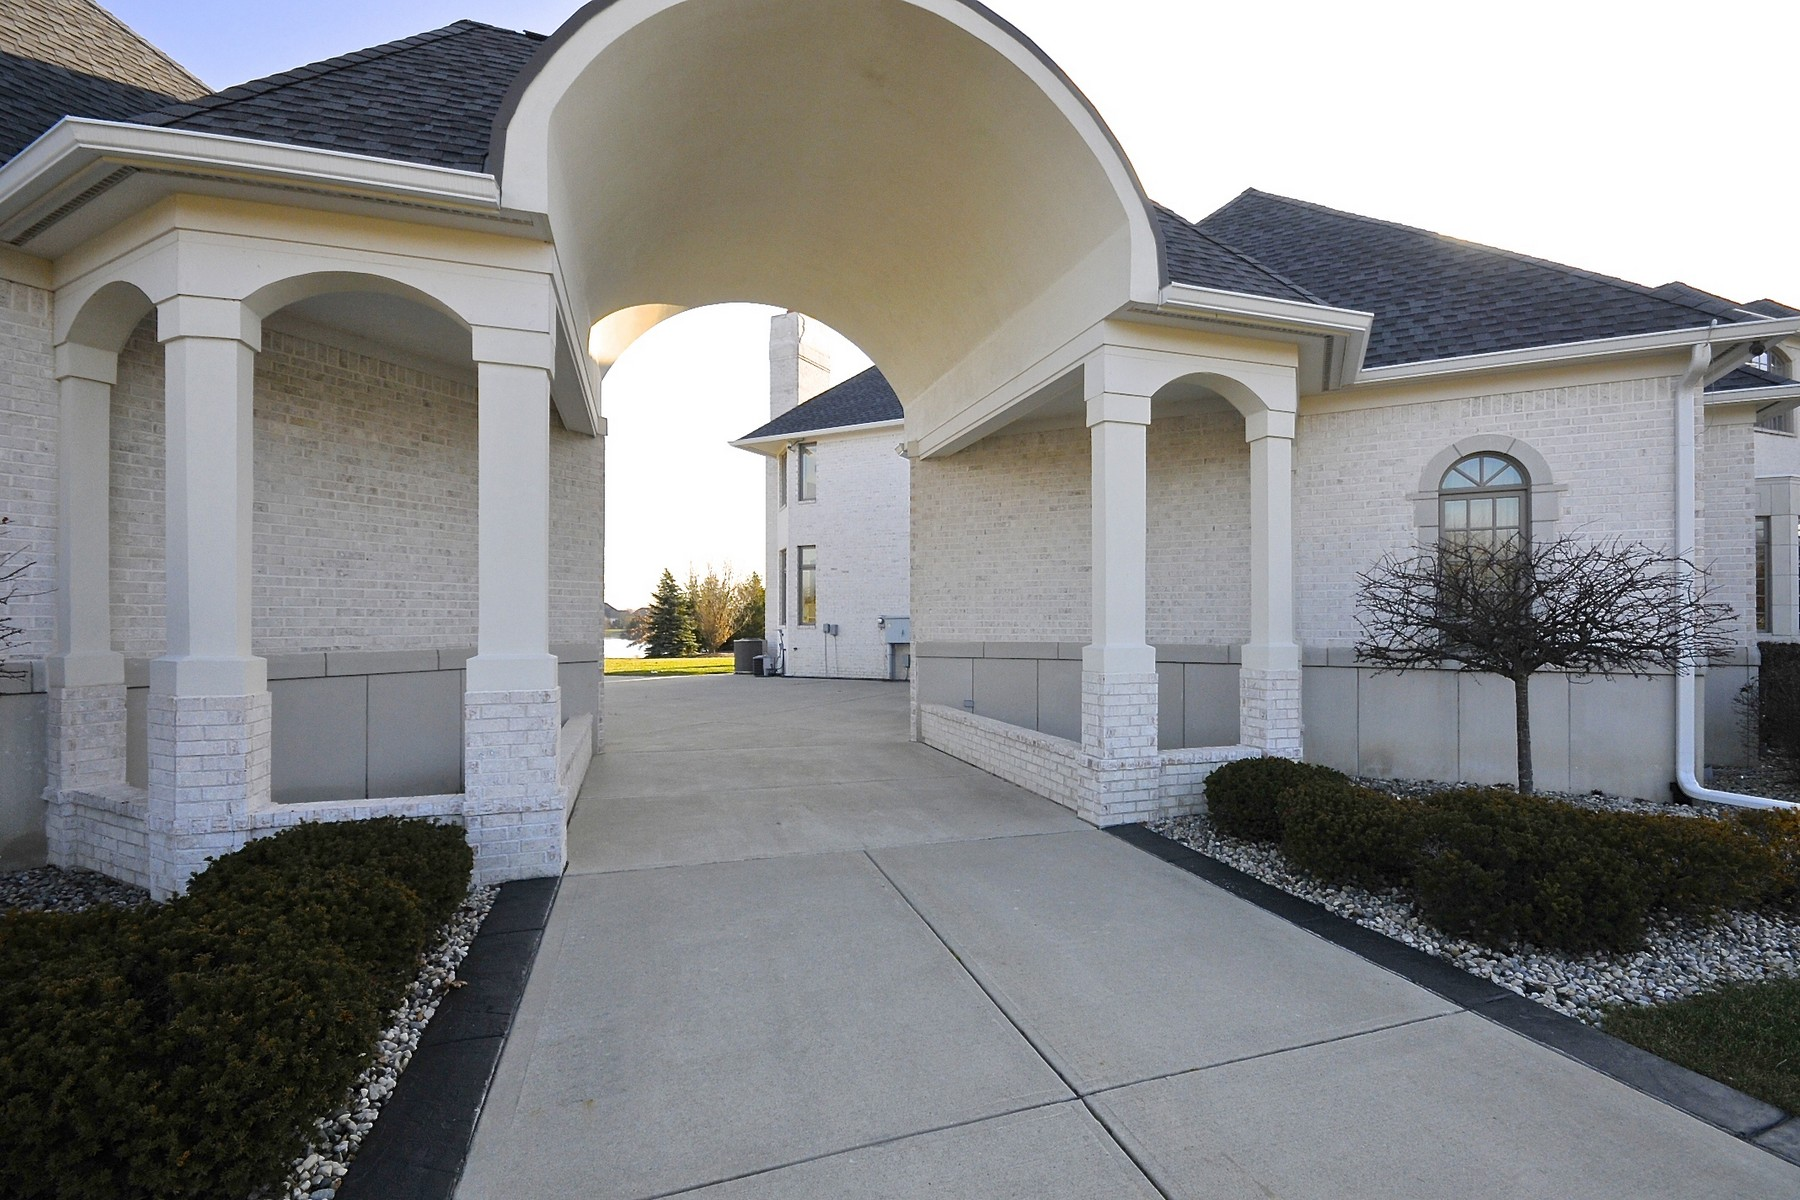 Single Family Home for Sale at Extraordinary Home in Desirable Bridlebourne 11121 Hintocks Circle Carmel, Indiana 46032 United States